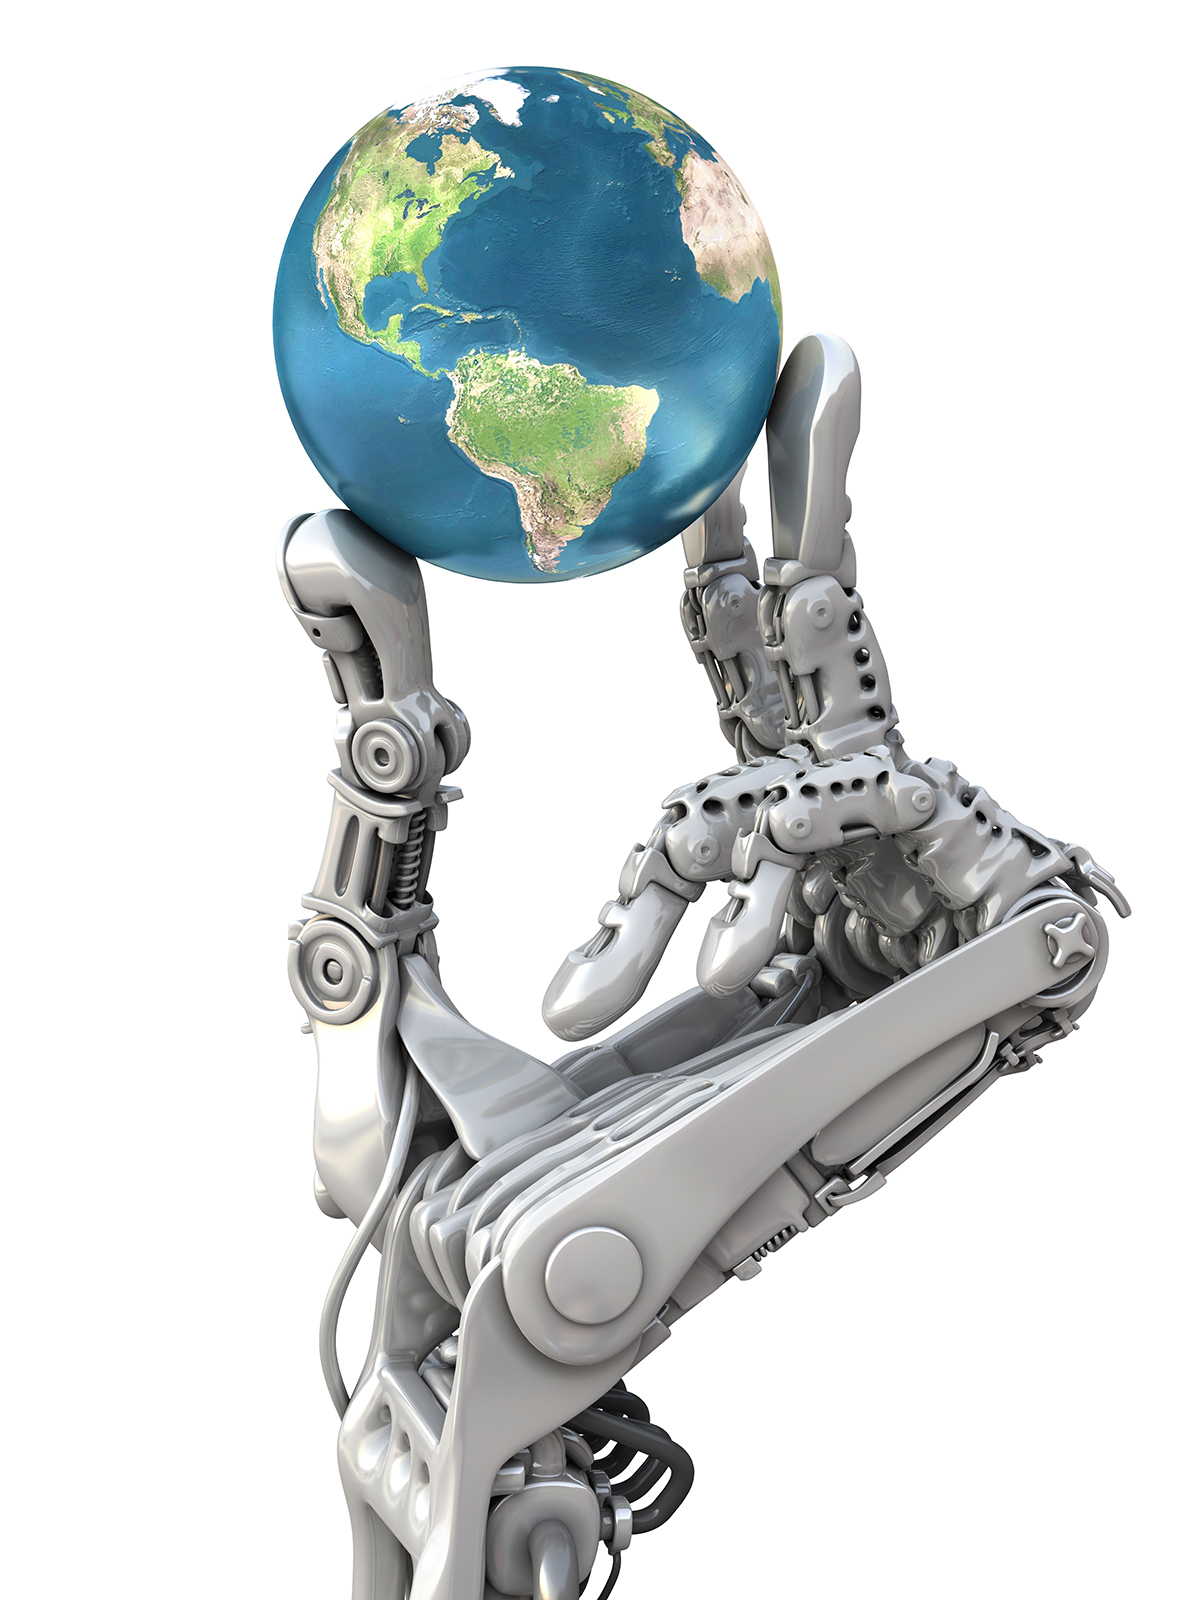 Robot keeps the blue globe. Planet Earth in hands at high